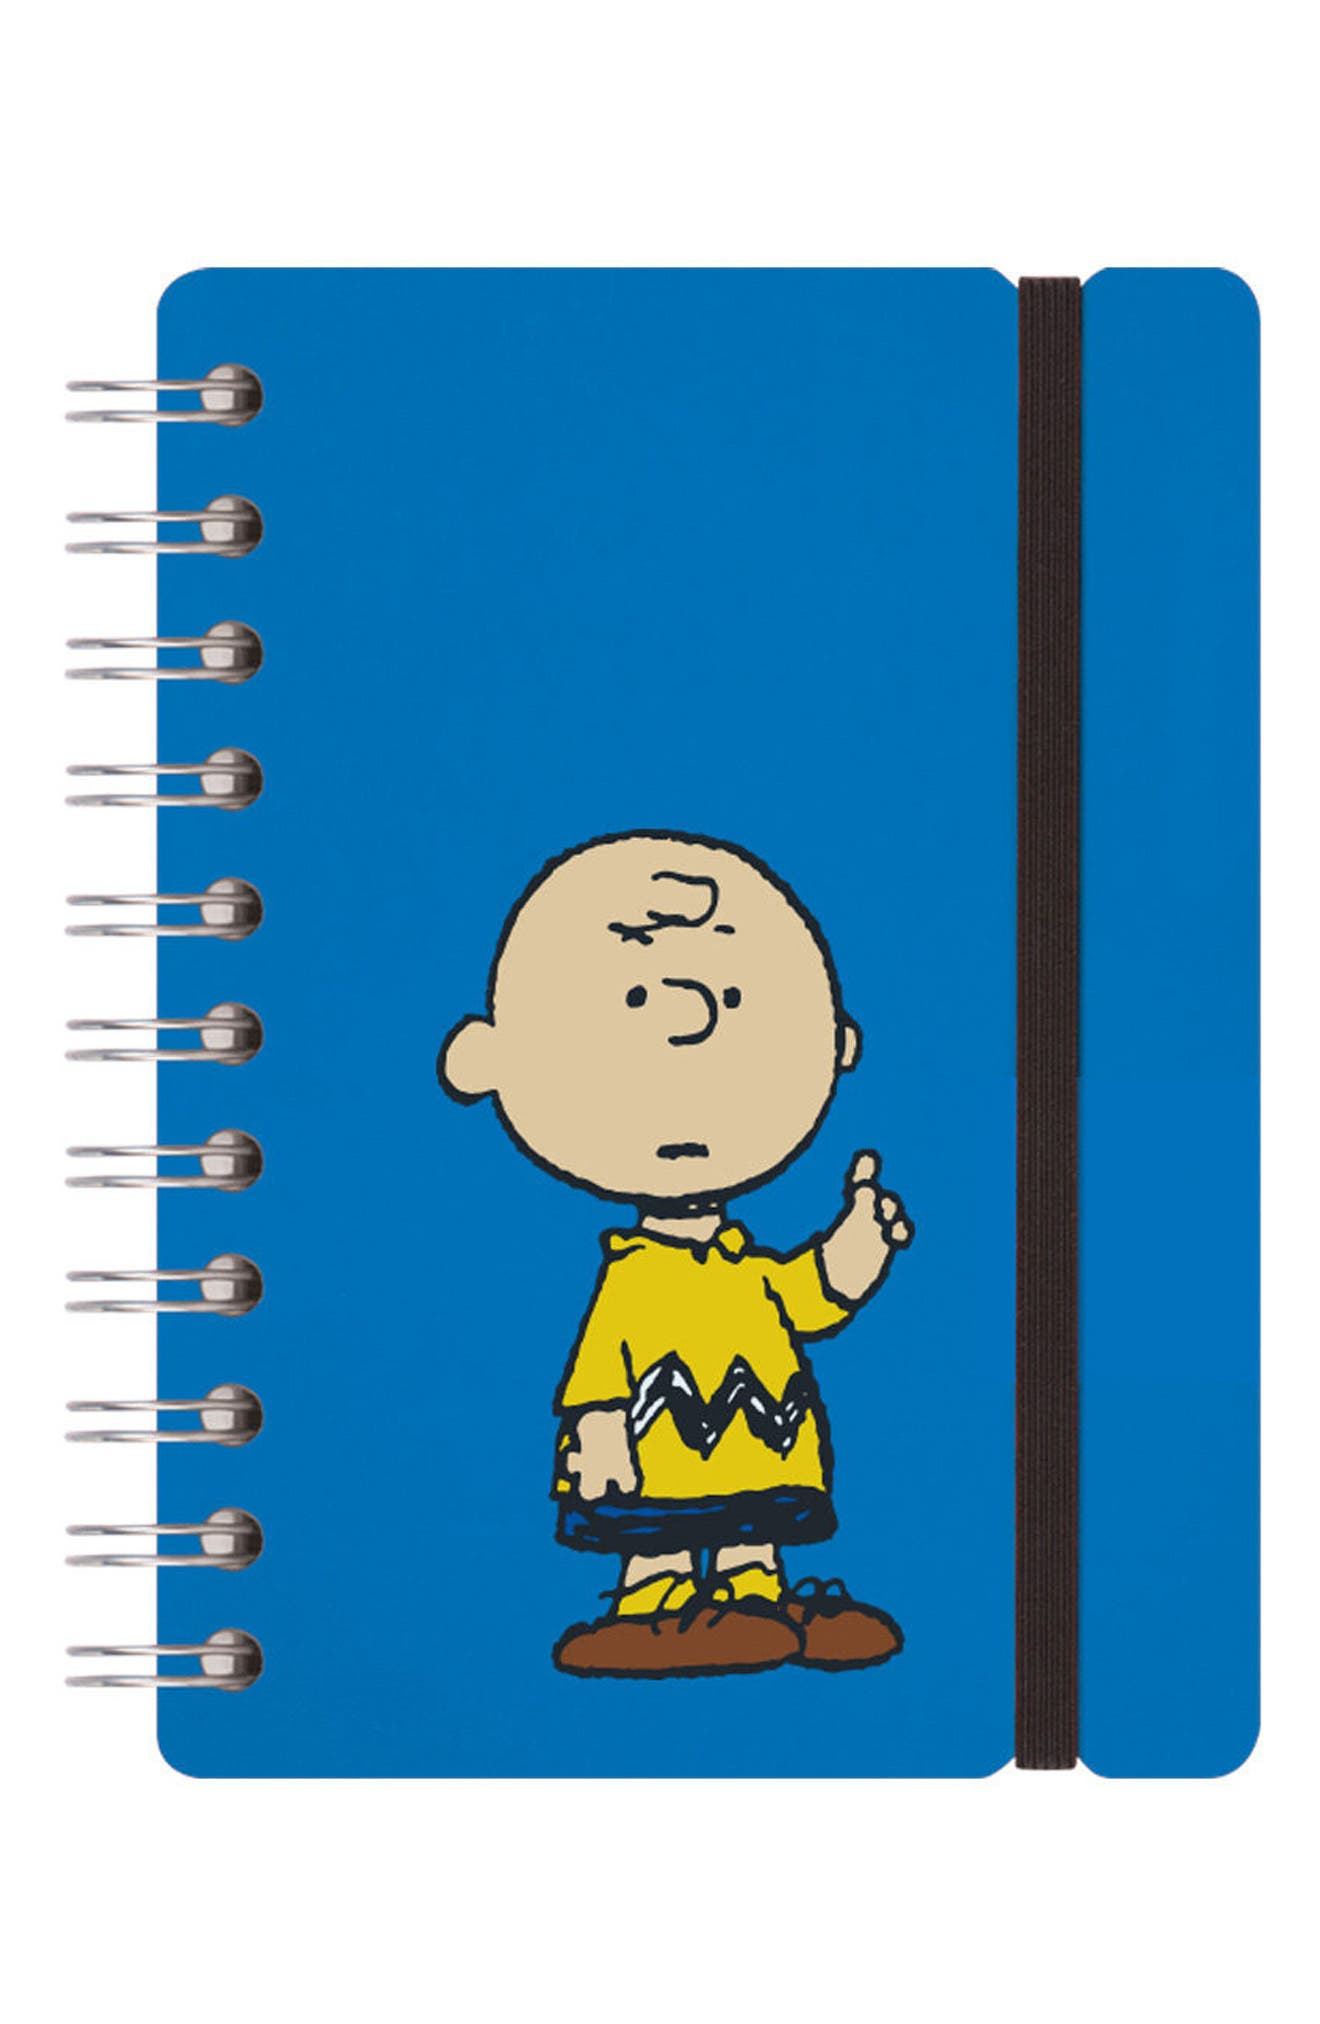 Vacavaliente Charlie Brown A6 Ruled Notebook (Limited Edition) (Nordstrom Exclusive)